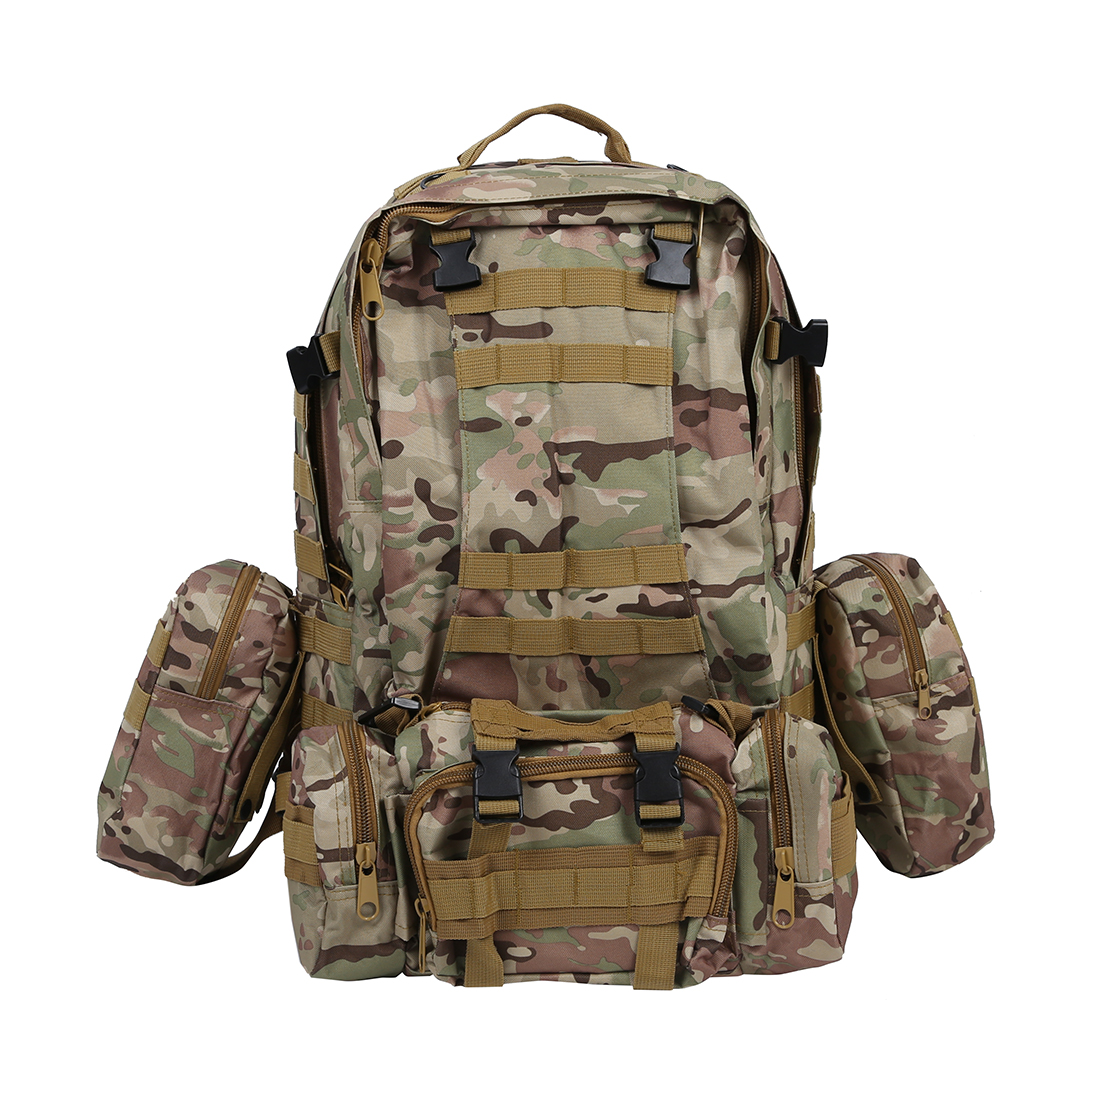 50 L 3 Day Assault Tactical Outdoor Military Rucksacks Backpack Camping bag - CP Camouflage l day l day ld001awhok96